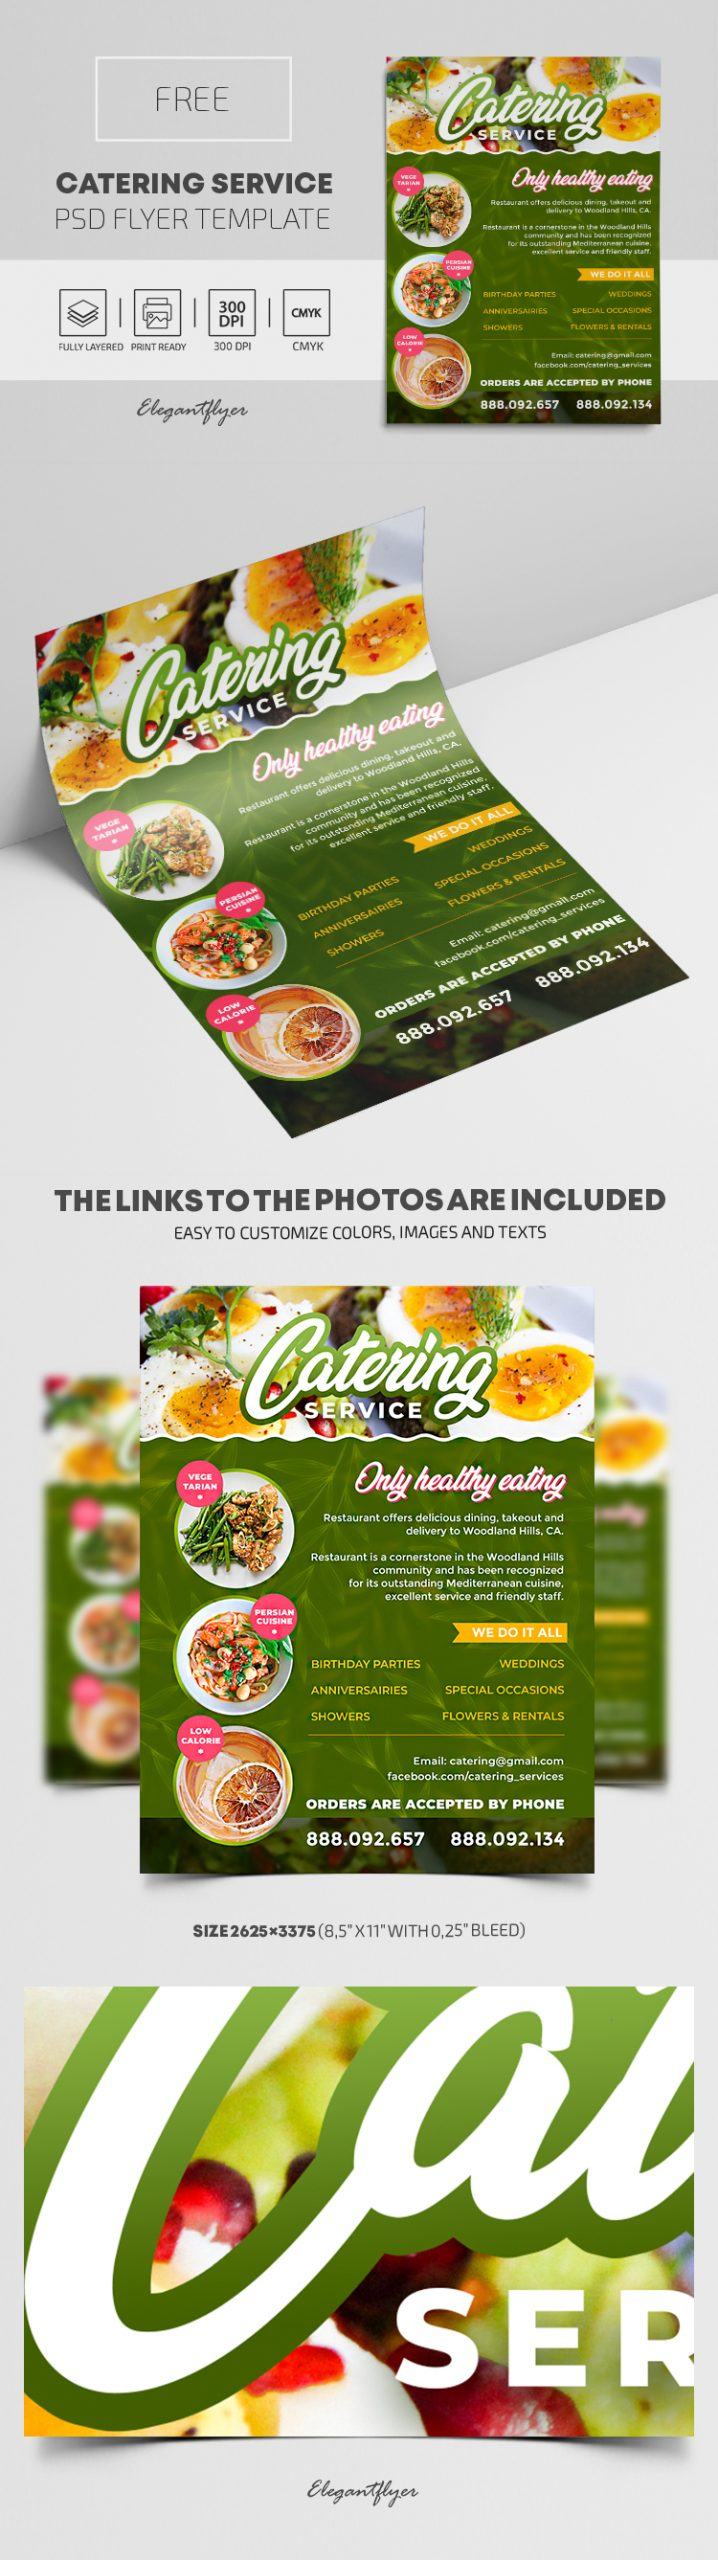 Catering Services – Free PSD Flyer